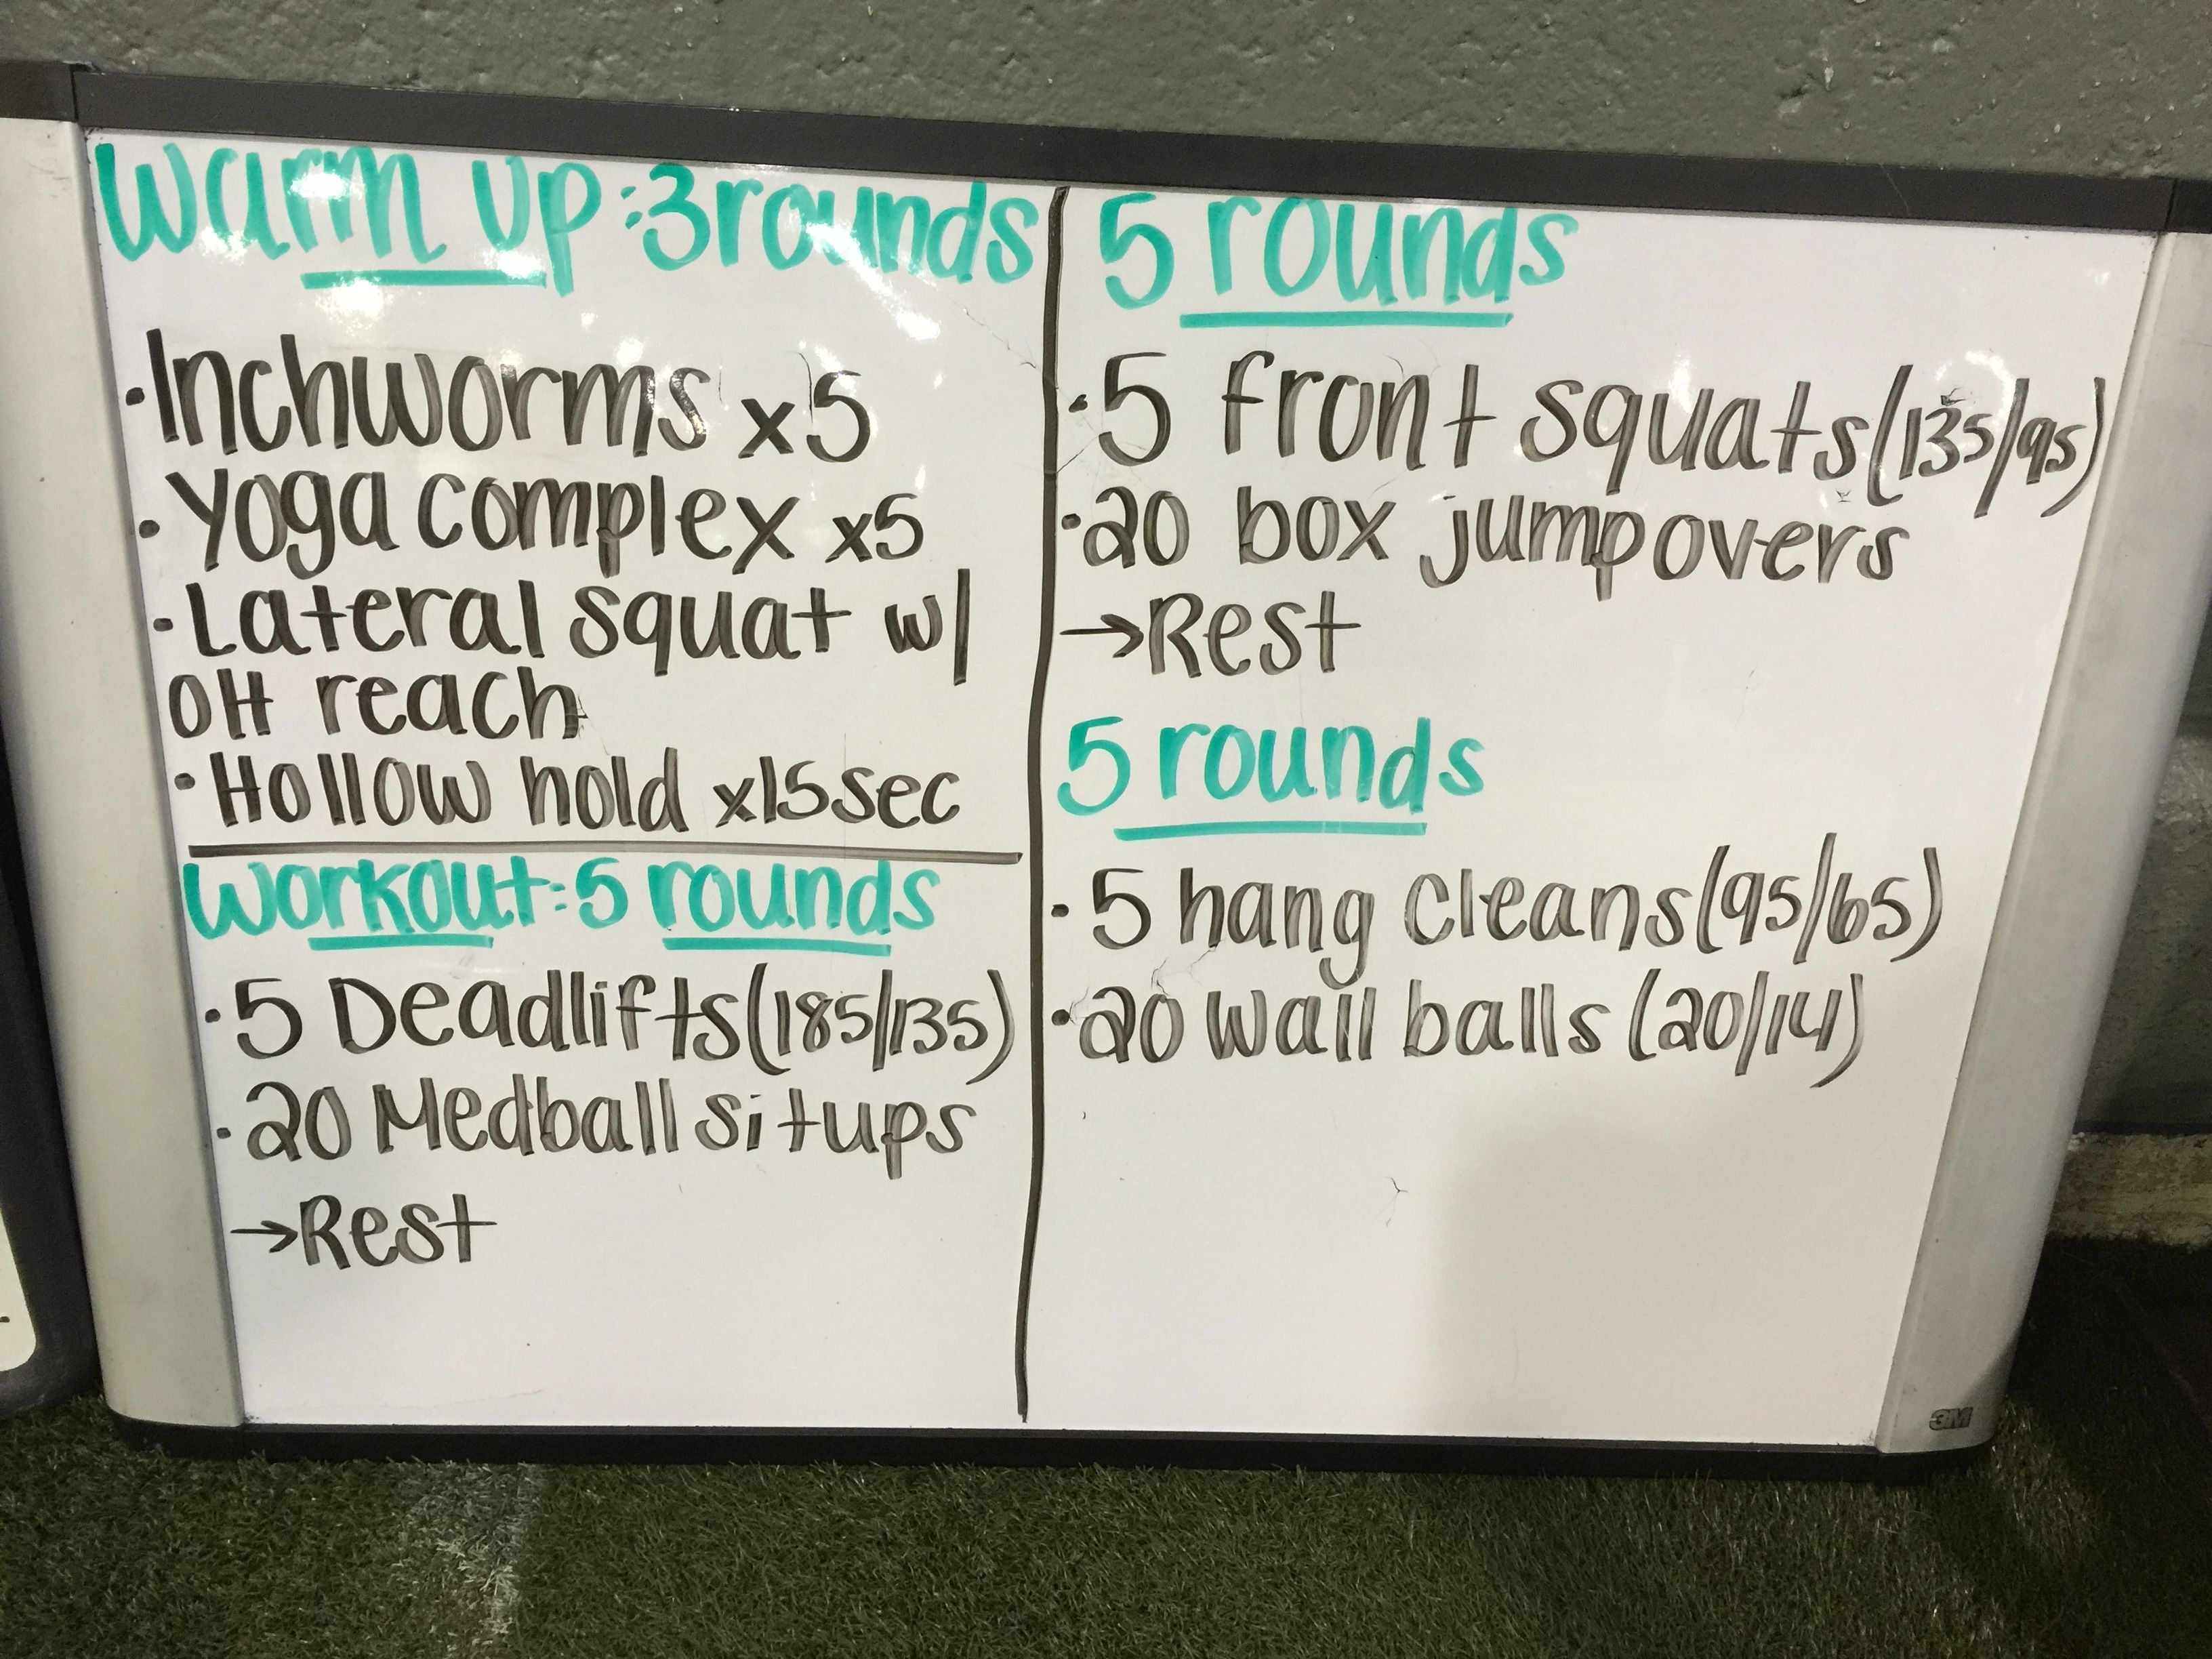 Awesome HIIT class! Barbell work was by far the easy part. Let's do more!